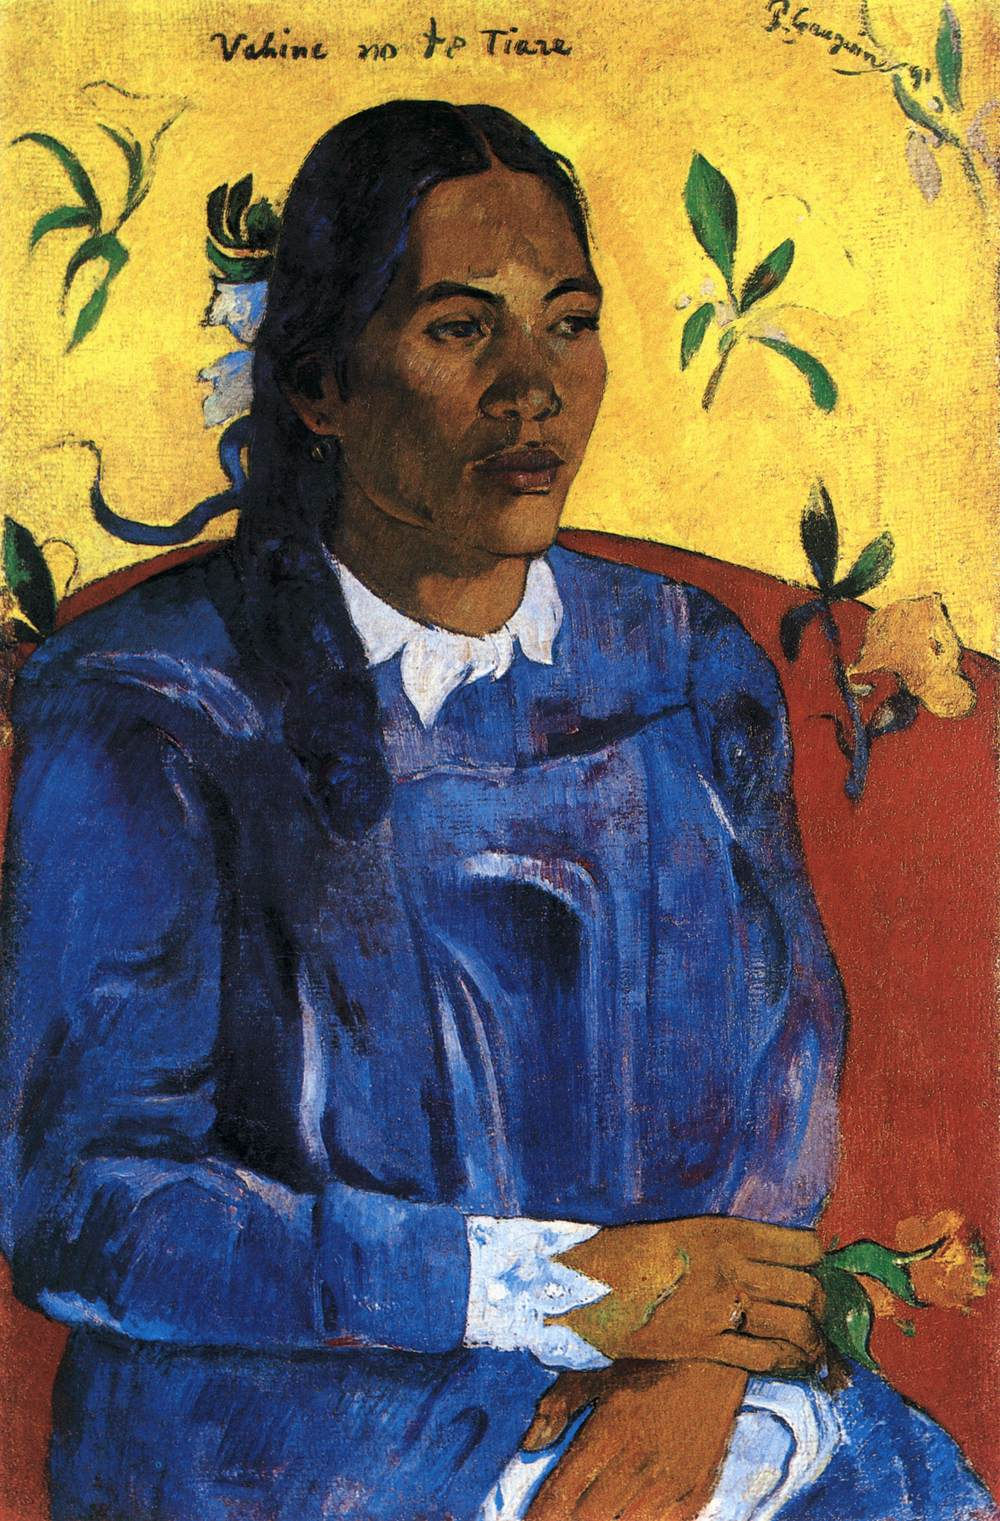 """Vahine No te Tiare (Woman With a Flower)"" (1891), Paul Gauguin, oil on canvas, 27 ½ x 18, Ny Carlsberg Glyptotek, Kopenhagen. Photo: Ole Haupt."